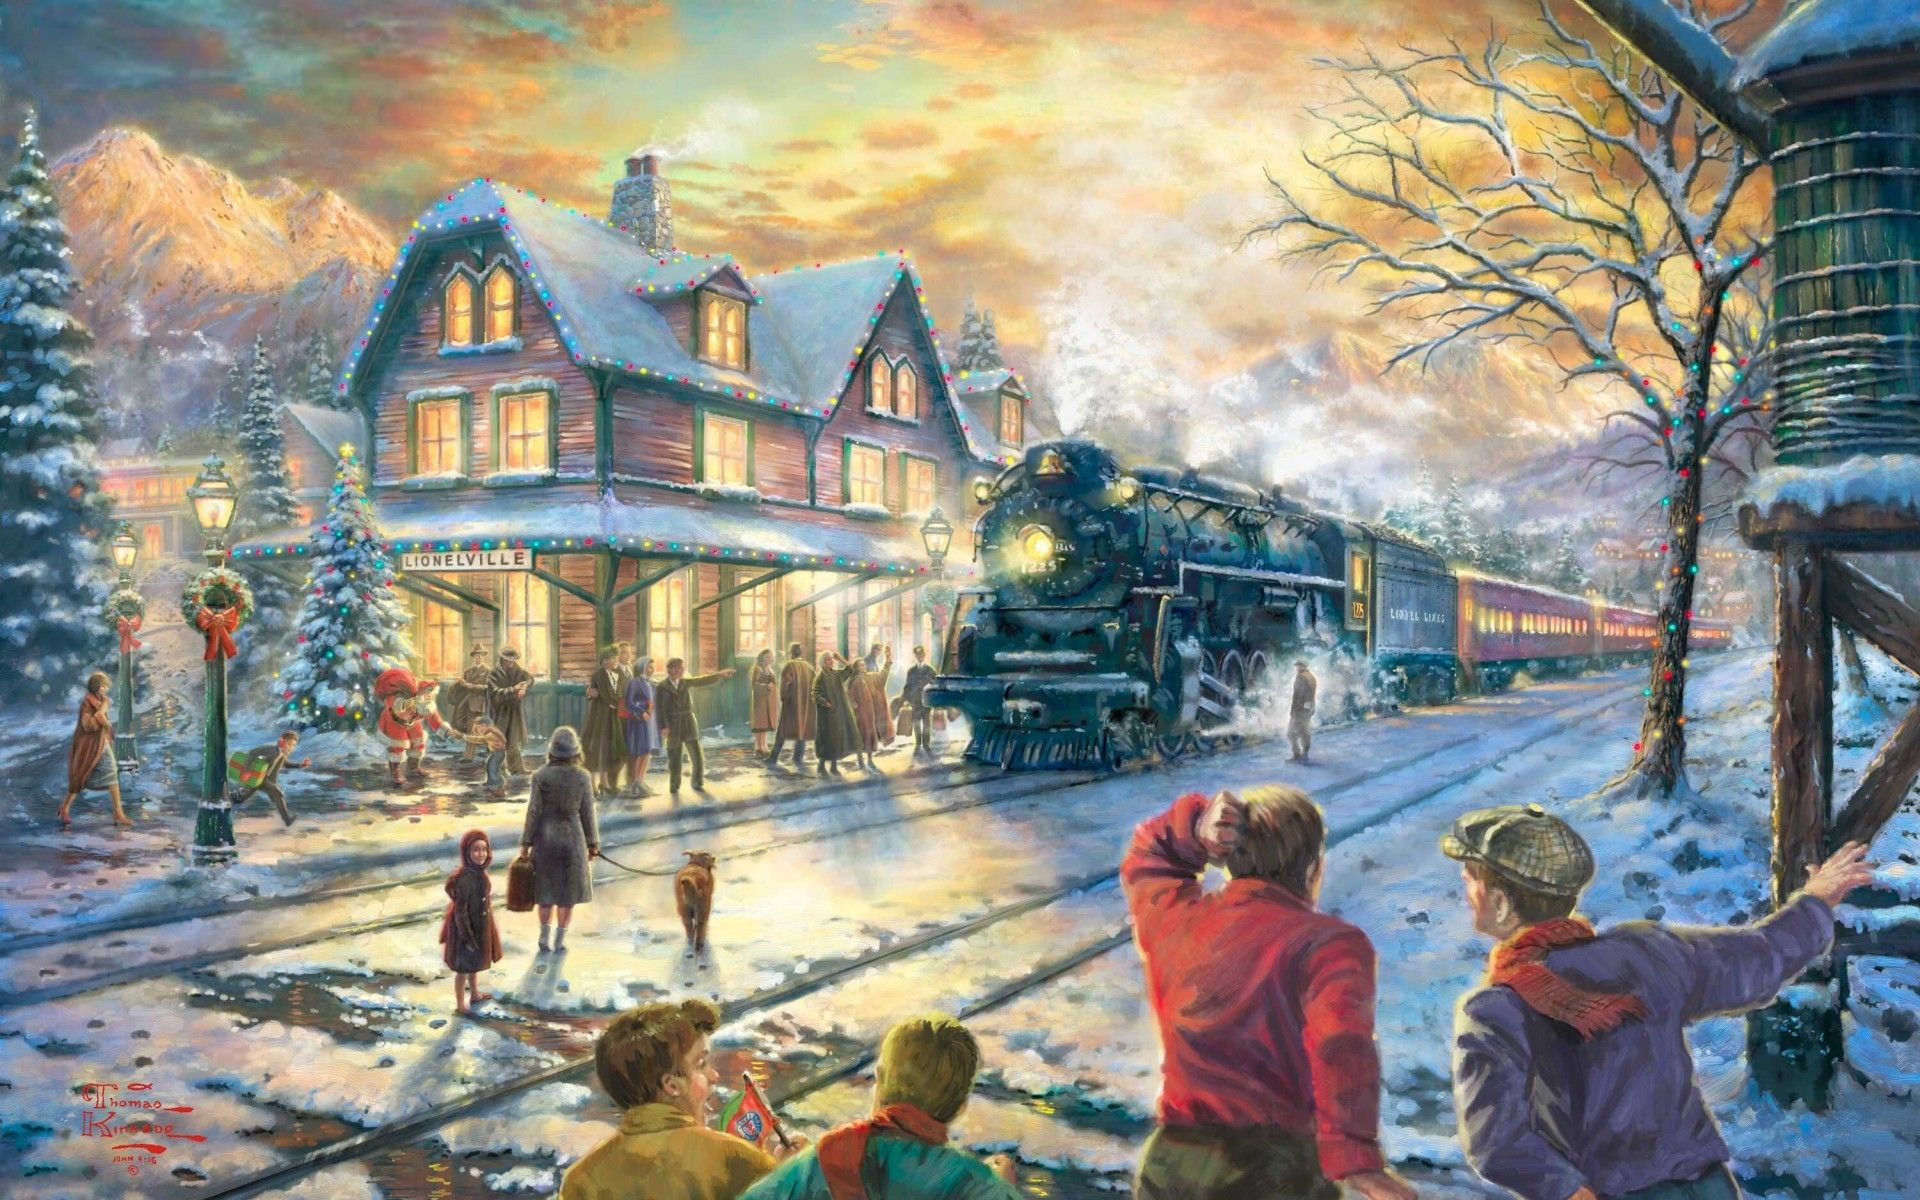 People painting houses - All Aboard For Christmas Thomas Kinkade Holidays Christmas Winter Snow Seasons Trains Tracks People Houses Rustic